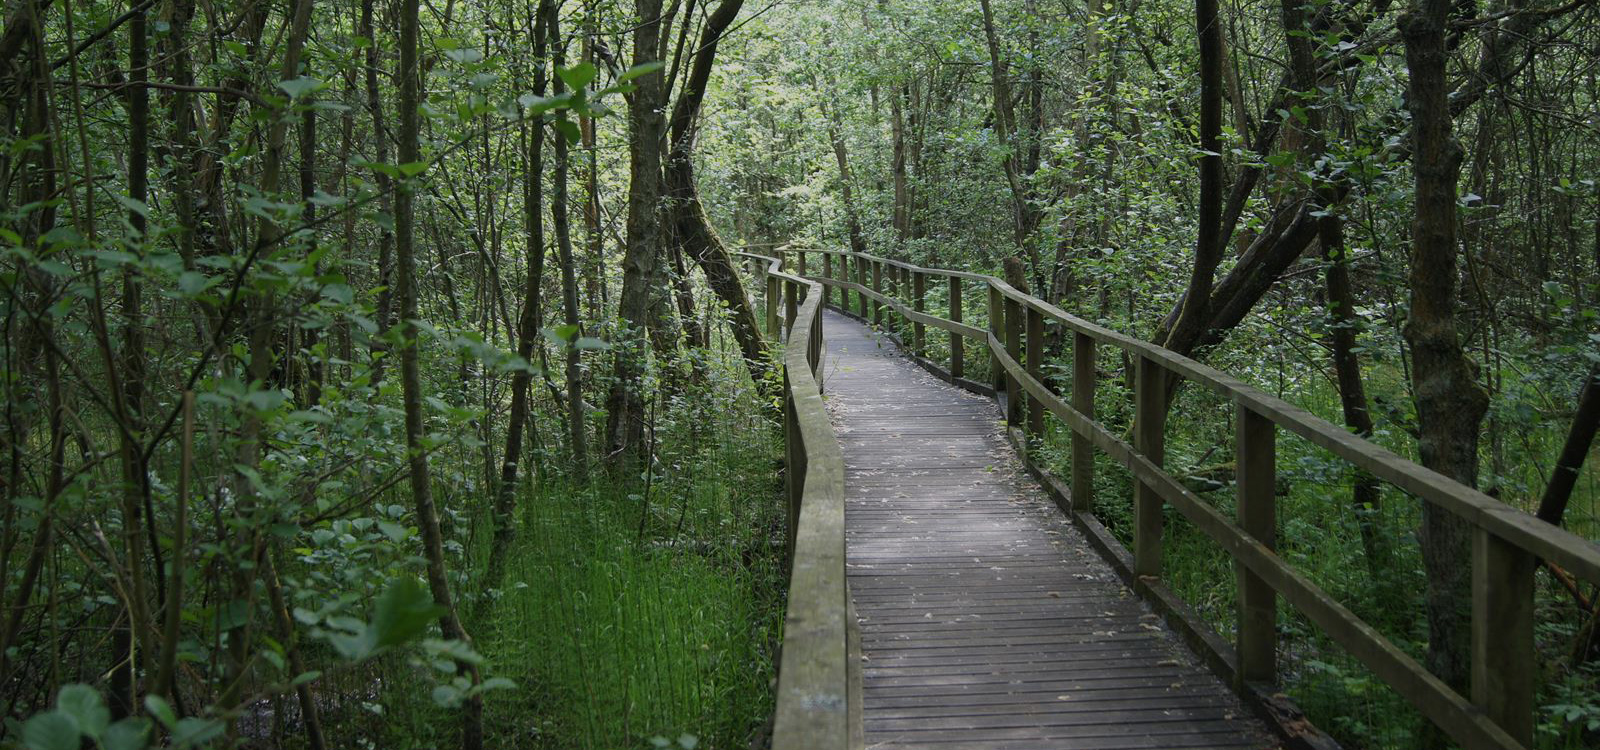 A boardwalk through a wooded wetland area at California Country Park